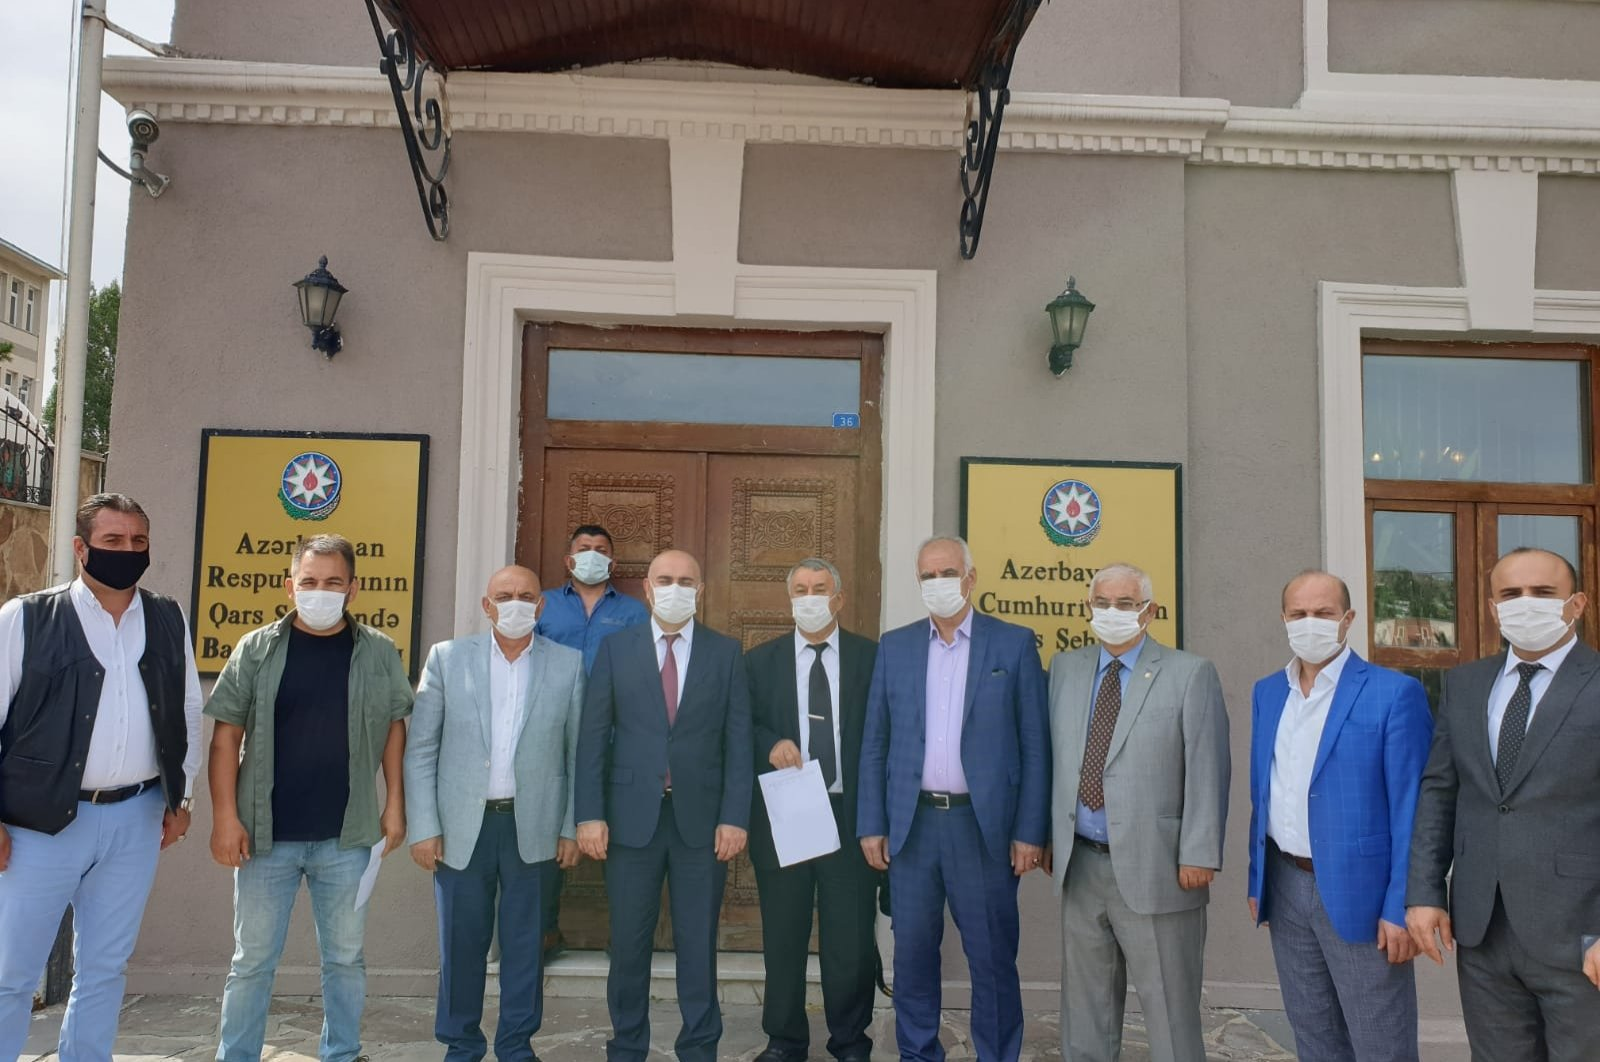 Representatives of several Turkish NGOs pose in front of the consulate-general of Azerbaijan in Kars after volunteering to fight alongside Azerbaijani forces, Kars, Oct. 4, 2020. (DHA)